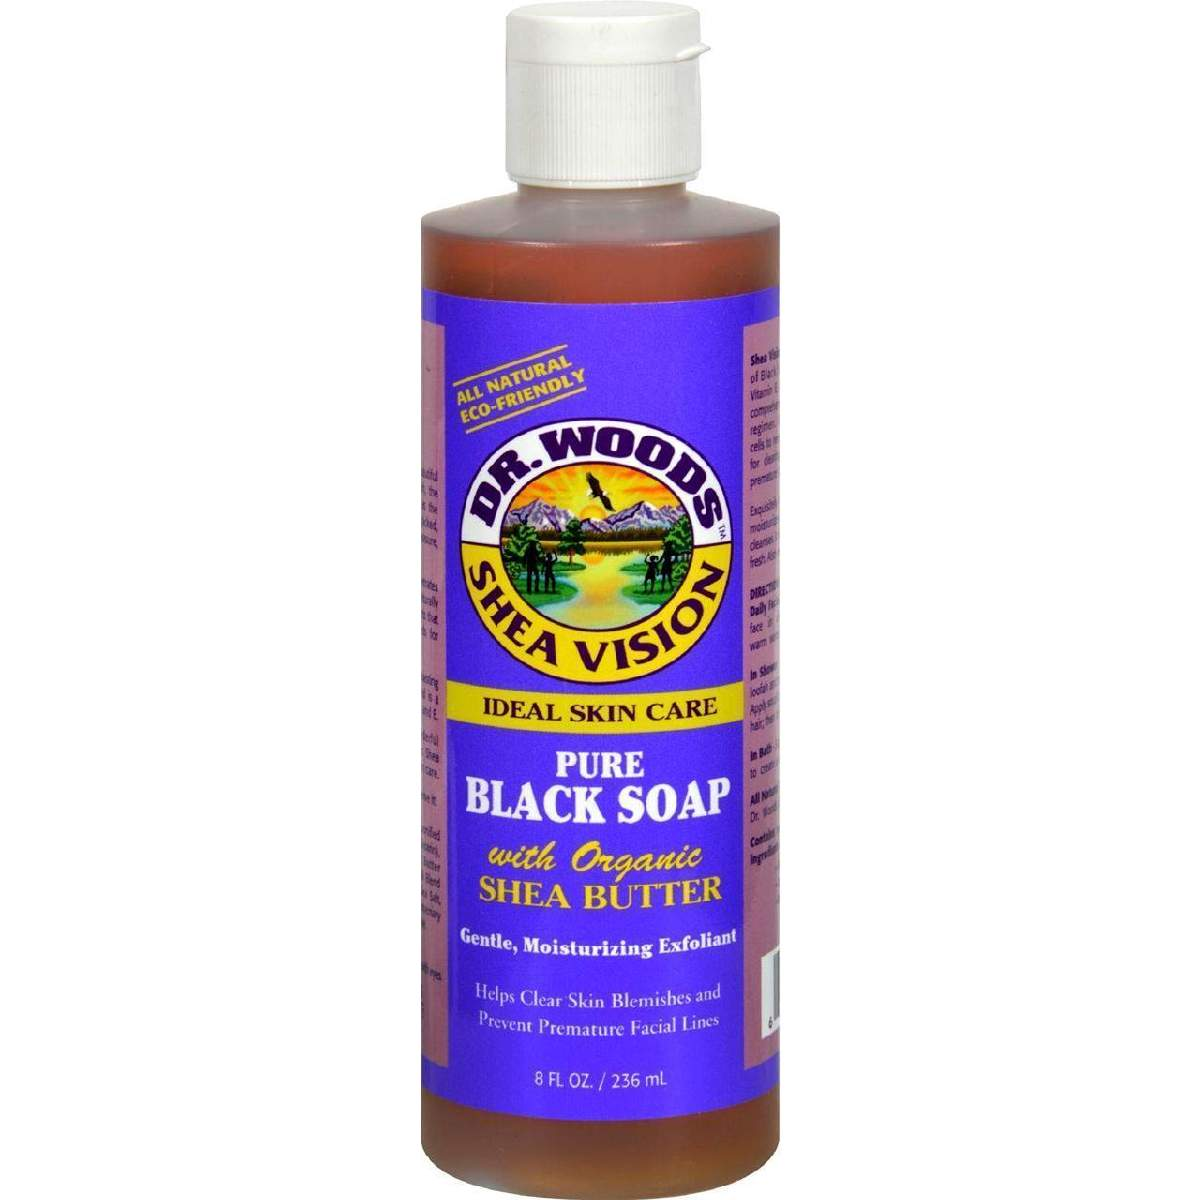 Dr. Woods Shea Vision Pure Black Soap With Organic Butter - 8 Fl Oz